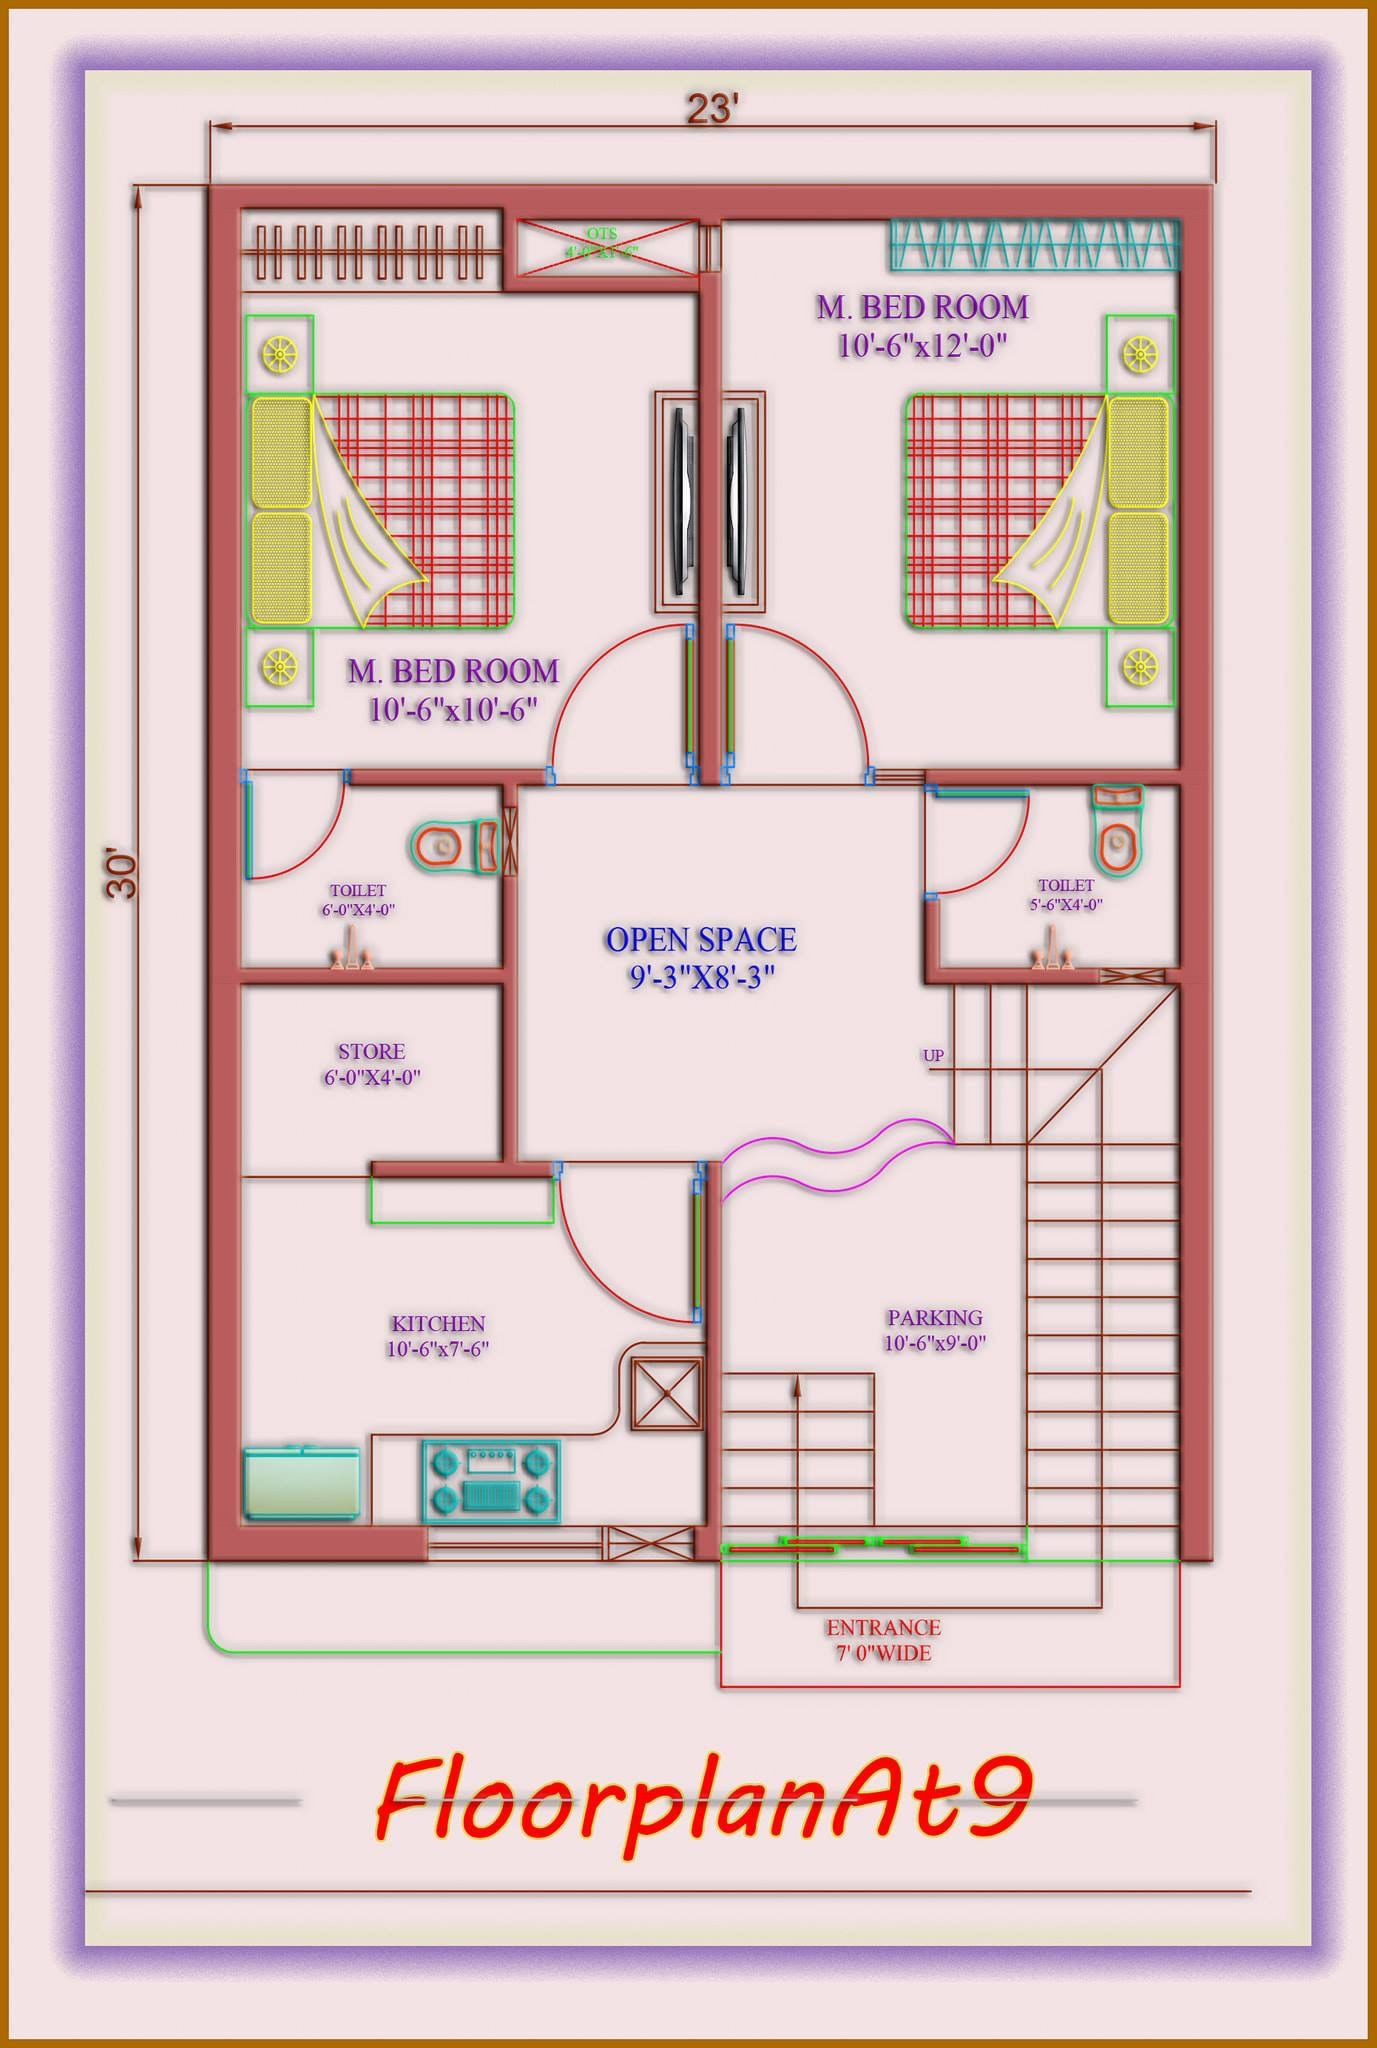 House Plan 23x30 West Facing Budget House Plans My House Plans 2bhk House Plan